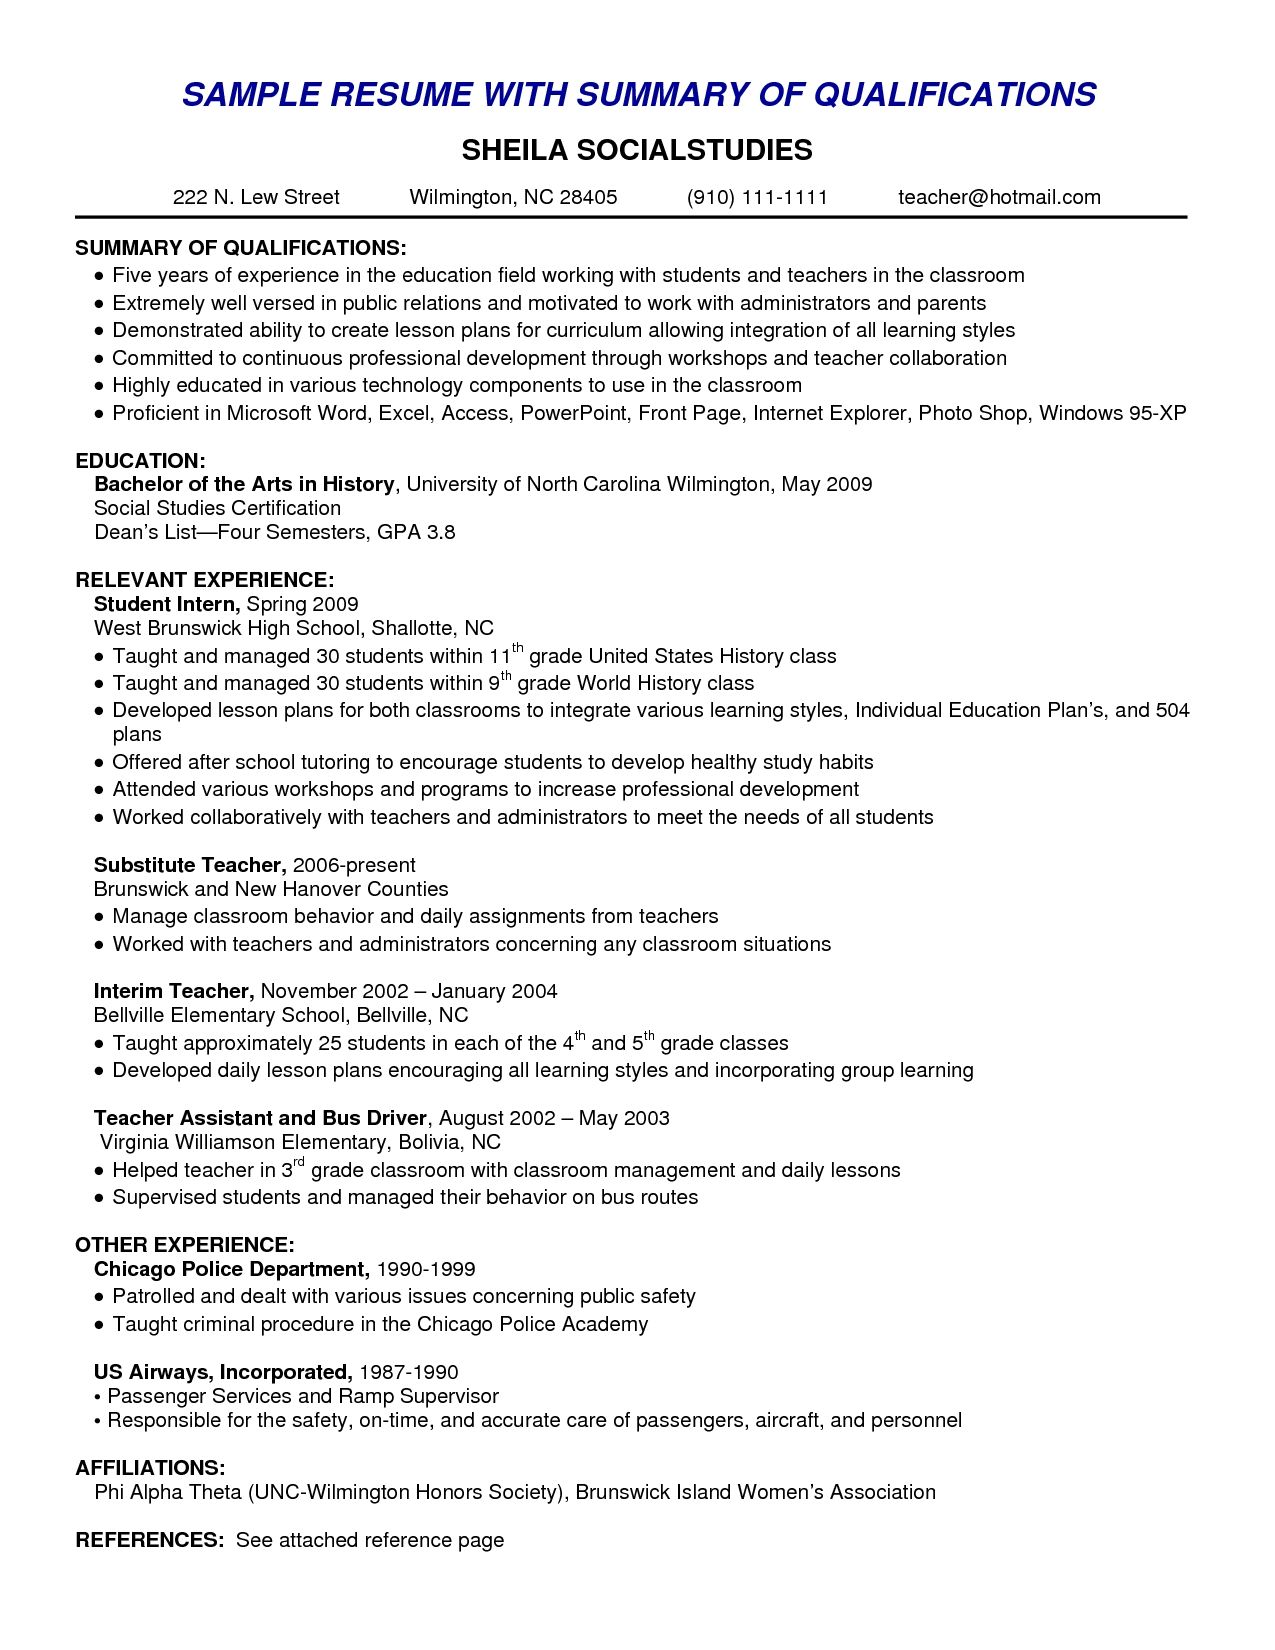 Exceptional Resume Skills Summary Examples Example Of Skills Summary For Resume Amusing  Summary Of Skills For Resume Summary Of Skills Examples